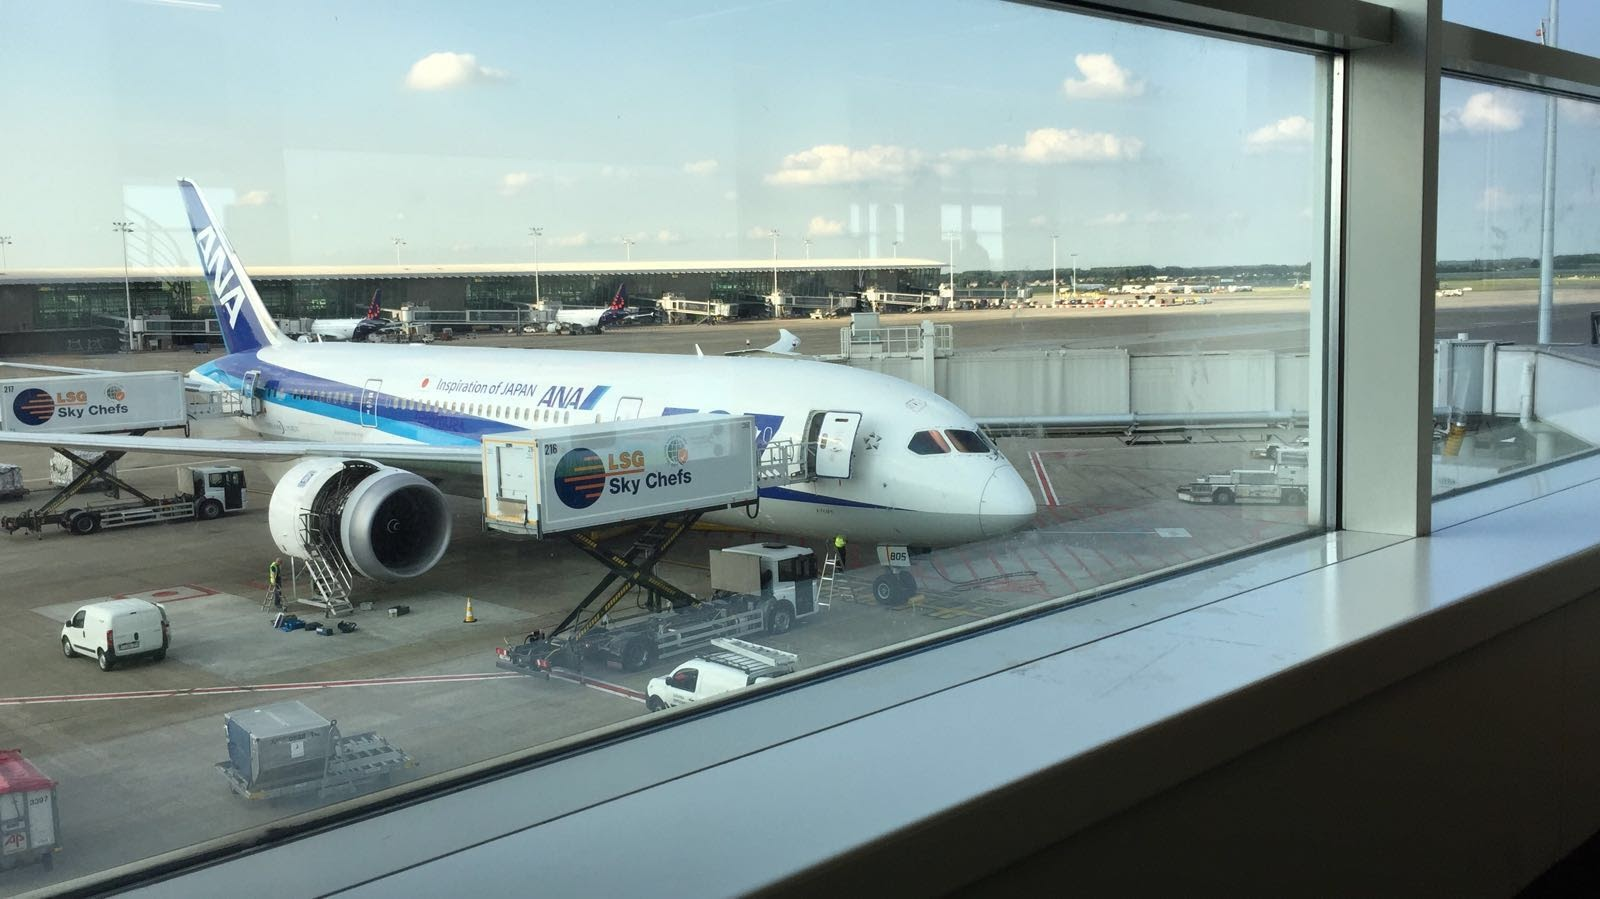 ANA's plane ready for departure